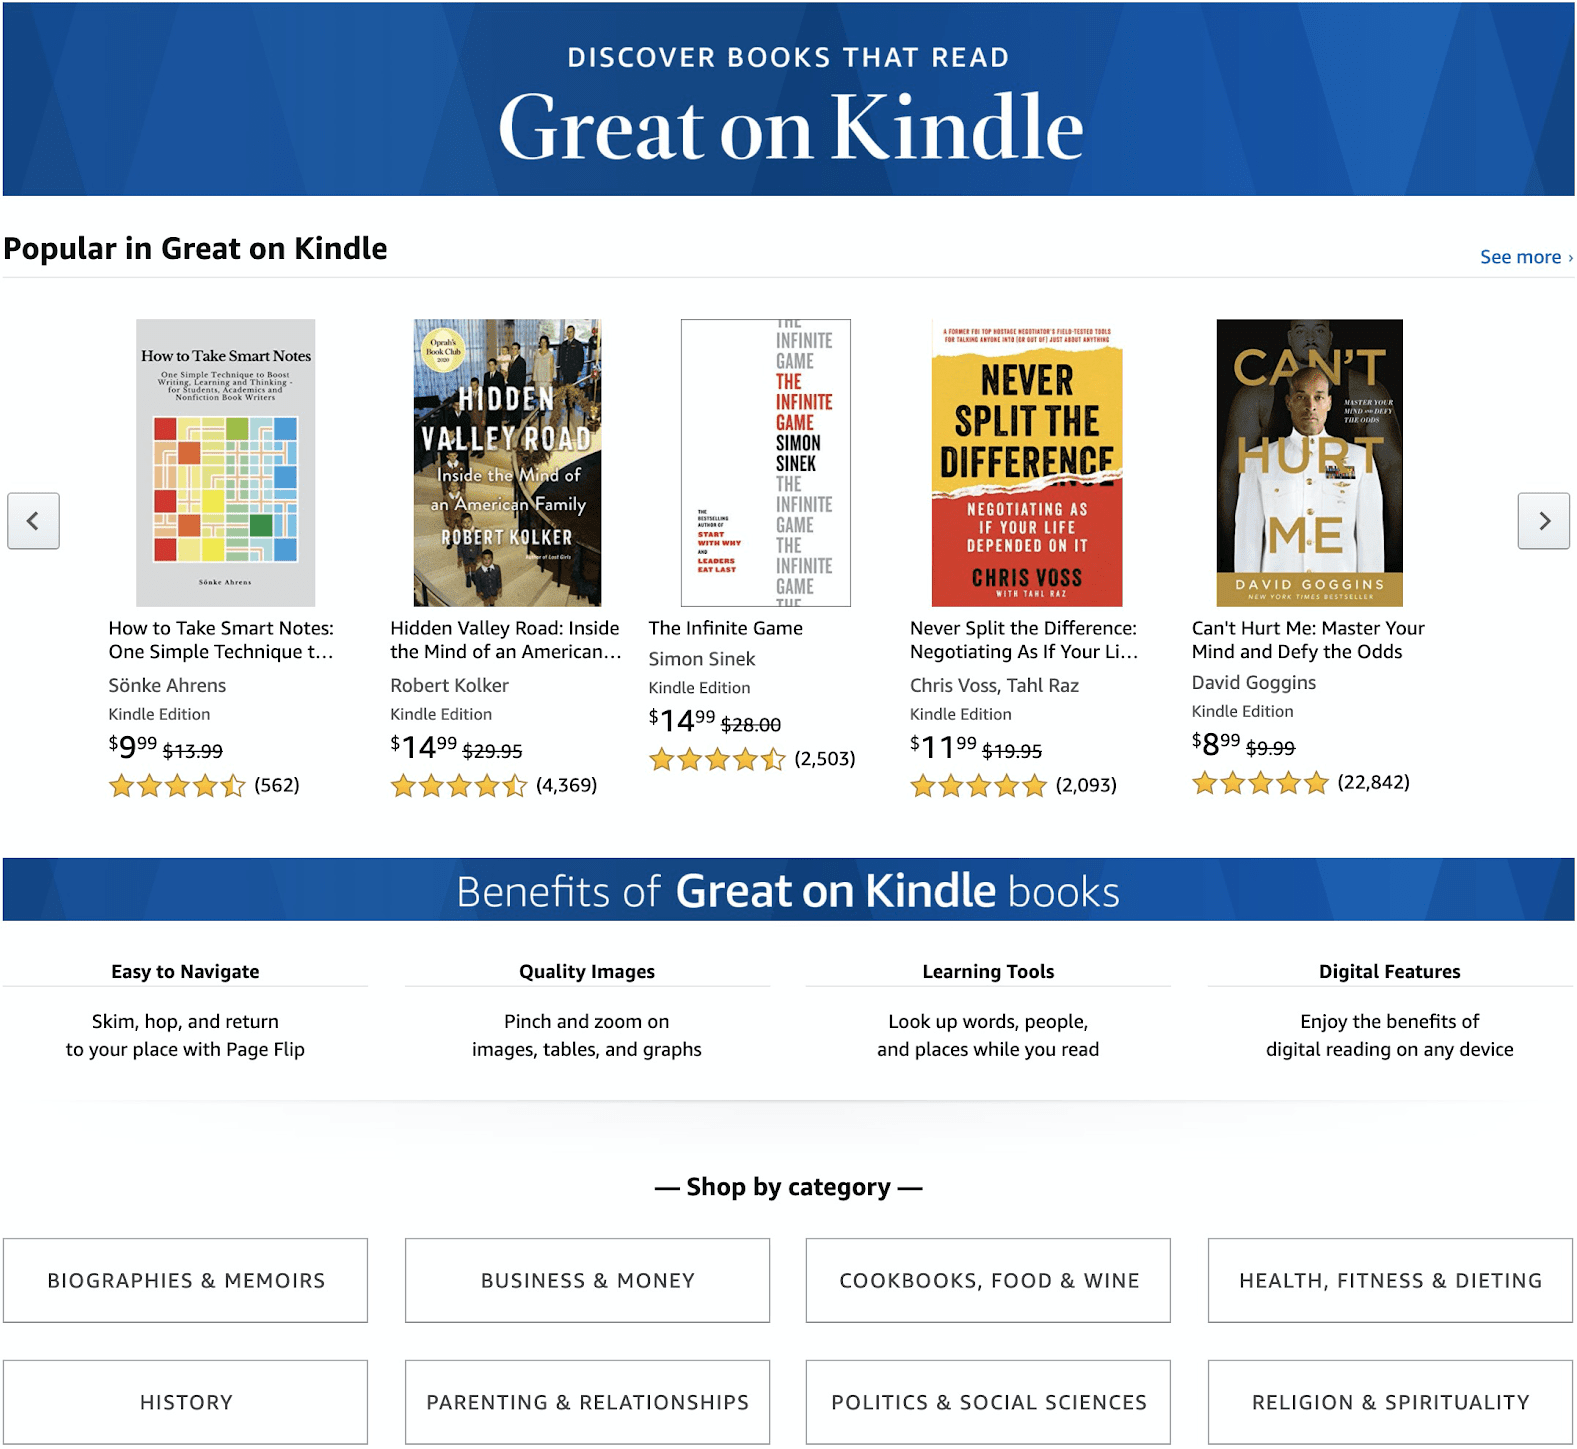 A screenshot of the Great on Kindle page.